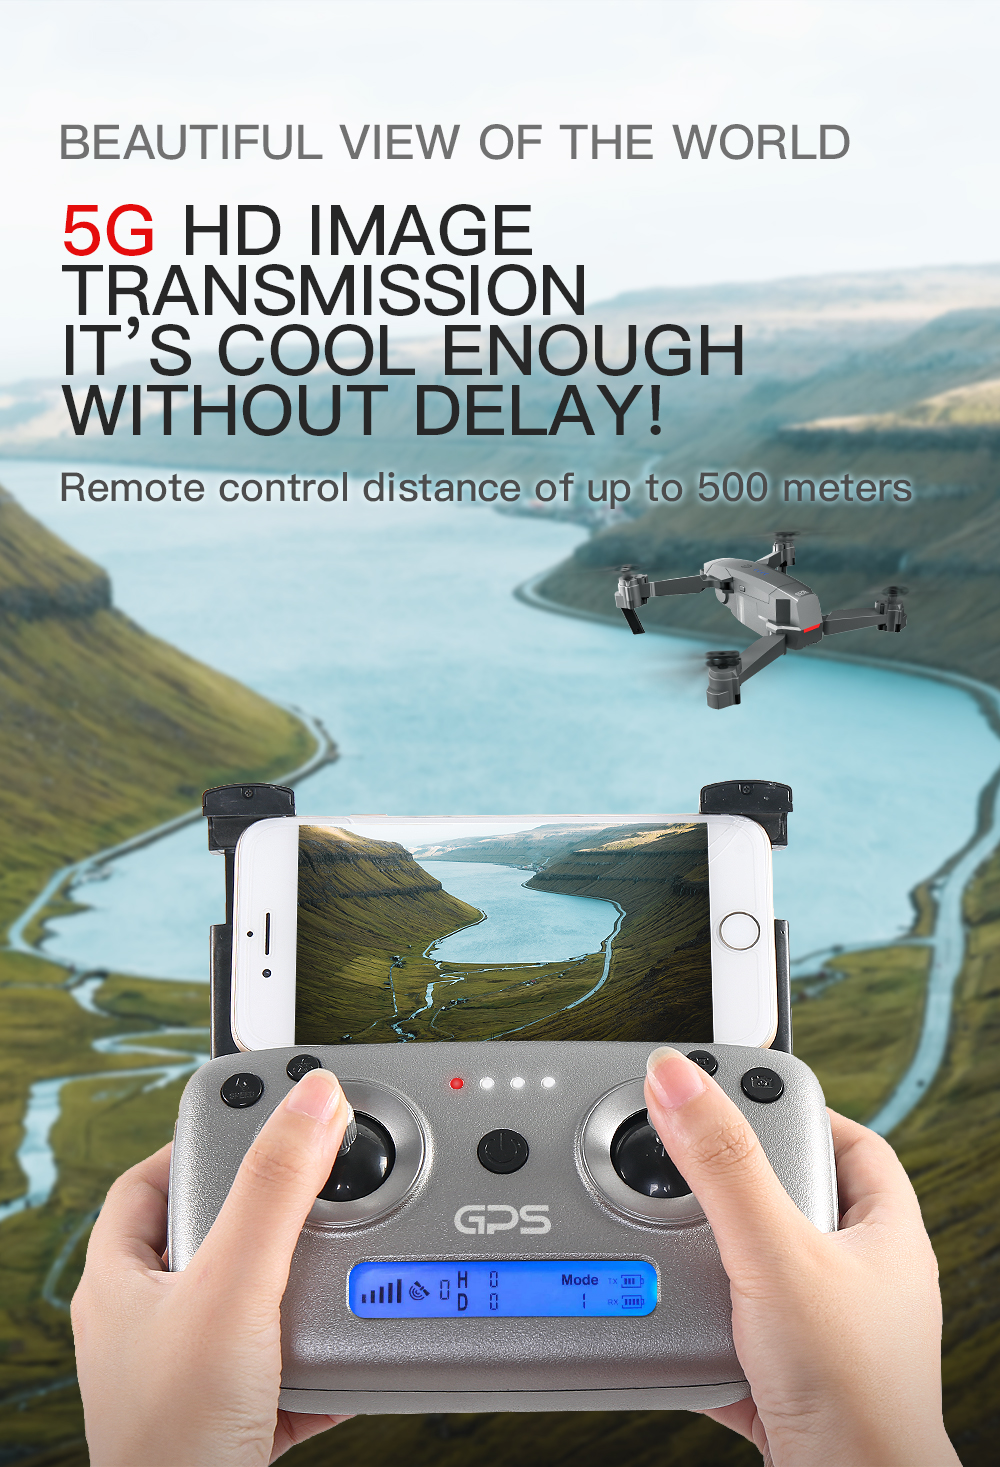 SG907 WIFI RC Quadcopter GPS Drone with 4K HD Dual Camera for Wide Angle Video Shooting 25